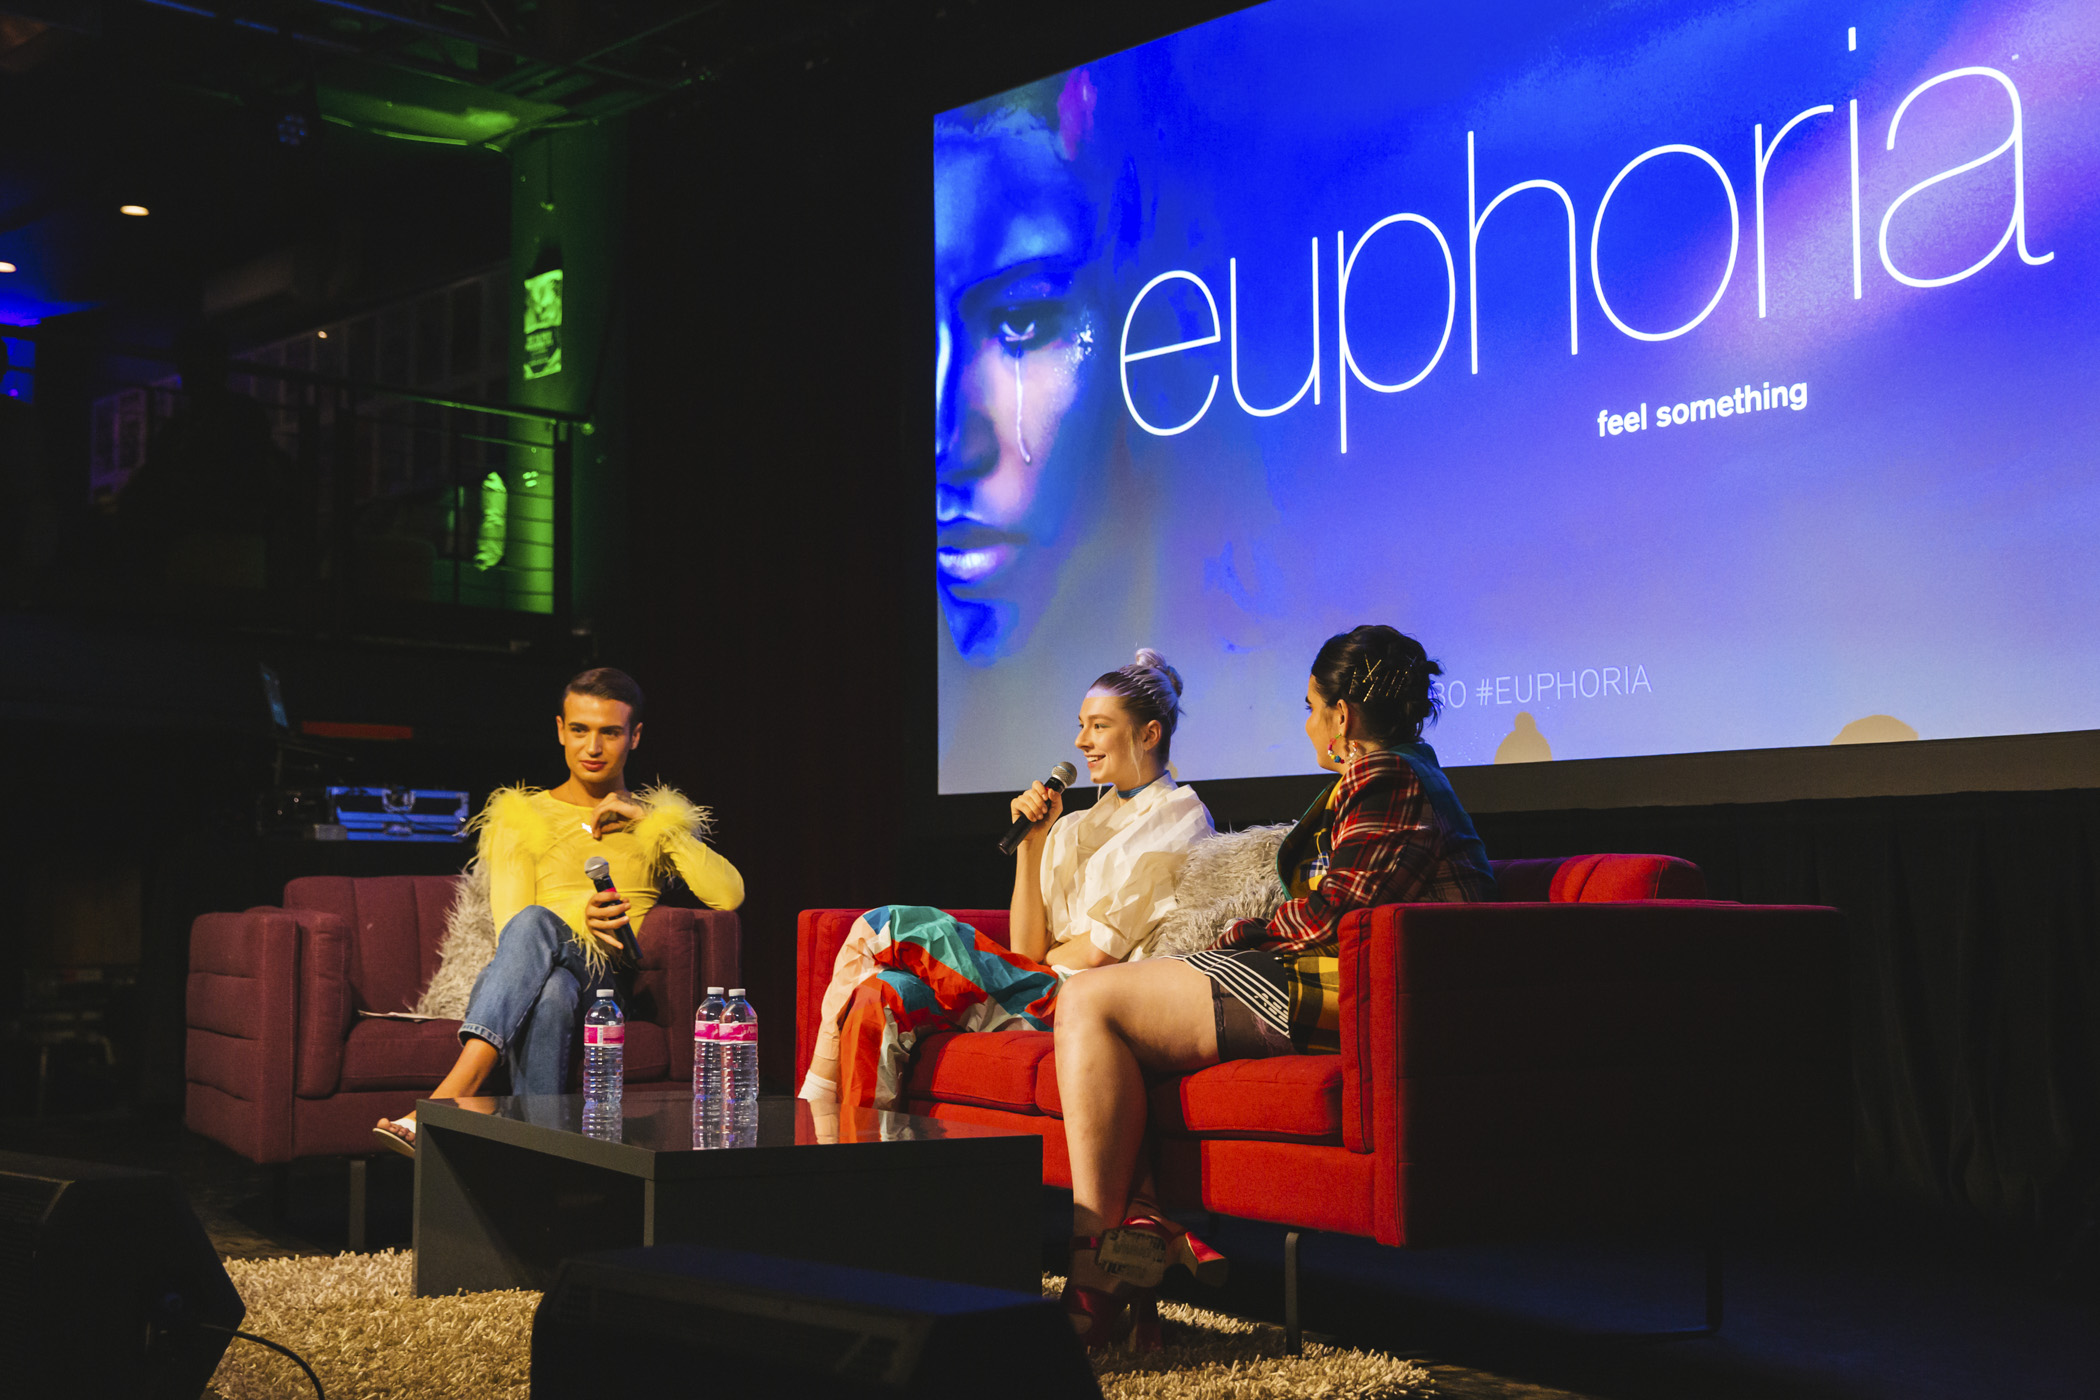 "Hunter Schafer and Barbie Ferreira attended a pop-up in Capitol Hill spotlighting their HBO drama series, ""Euphoria""! The young stars made an appearance at The Phluid Project, the world's first gender-free retail brand who partnered with HBO for the event. Following the pop-up, Shafer and Ferreira attended a screening of Euphoria's fourth episode, followed by a discussion with The Phluid Project's Preston Souza.{ }EUPHORIA follows a group of high-school students as they navigate a minefield of drugs, sex, identity, trauma, social media, love and friendship. Multimedia superstar Zendaya heads the ensemble cast. (Image: Sunita Martini / Seattle Refined)."